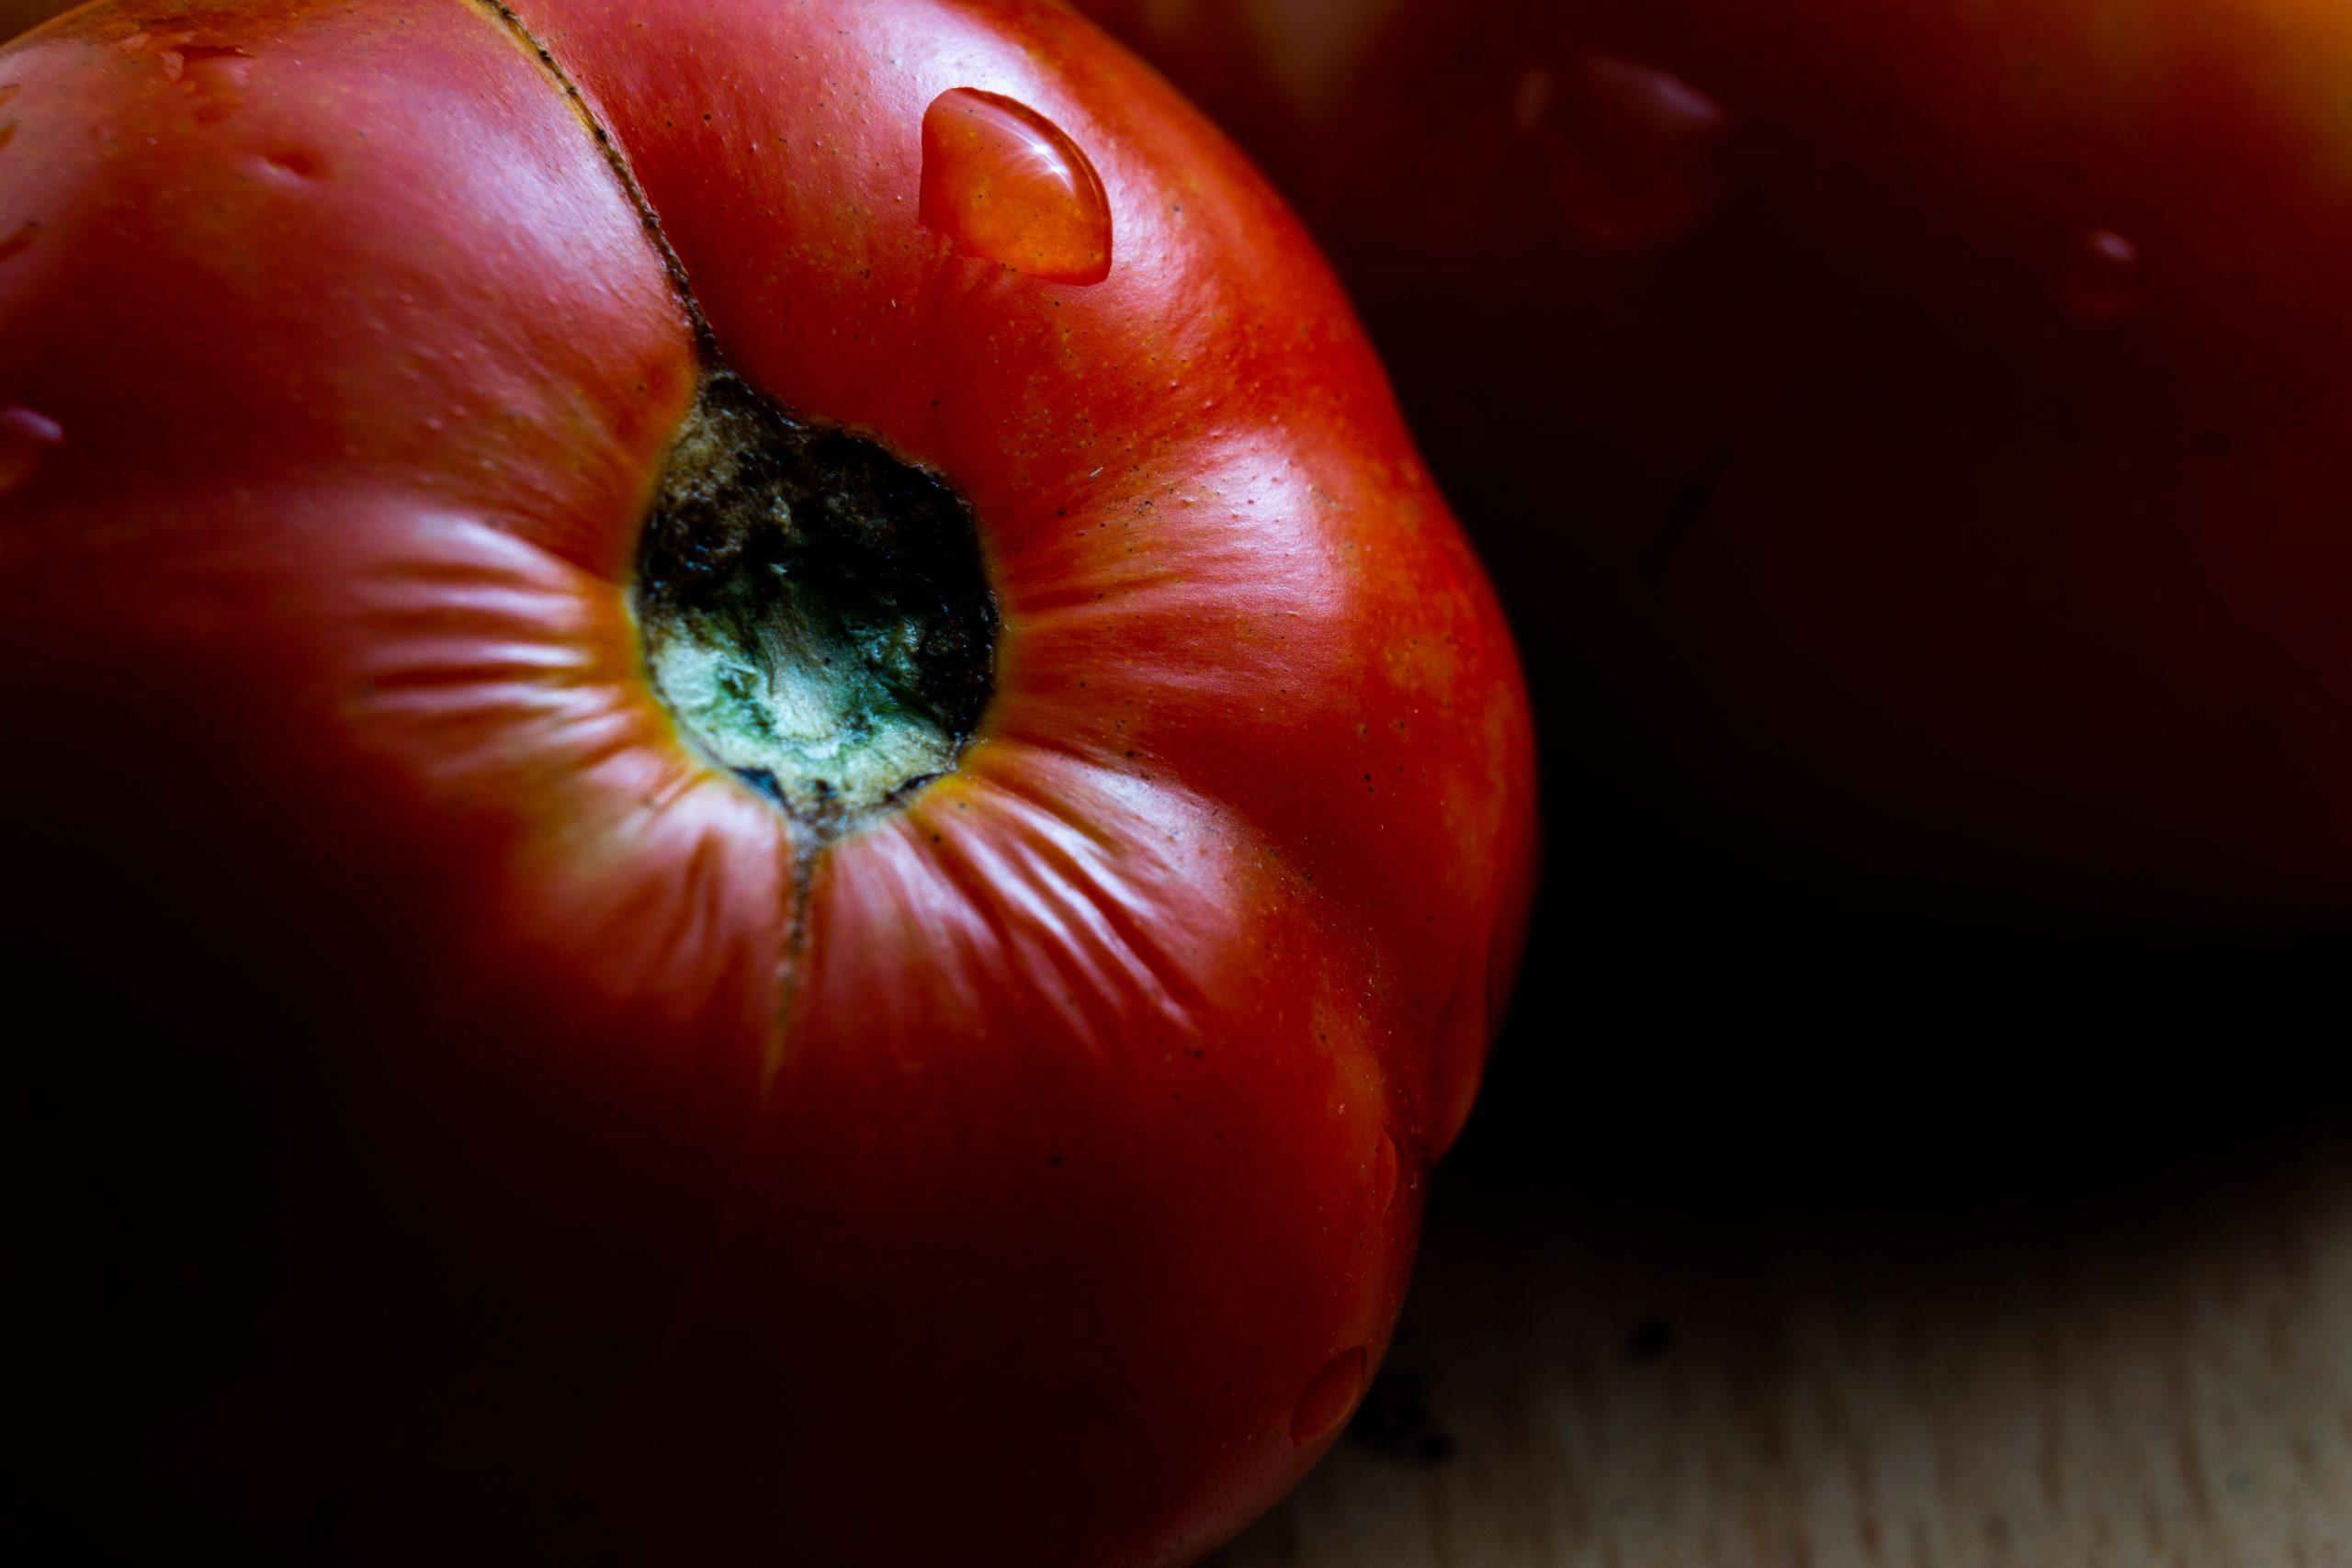 Tomato in the Table on Focus